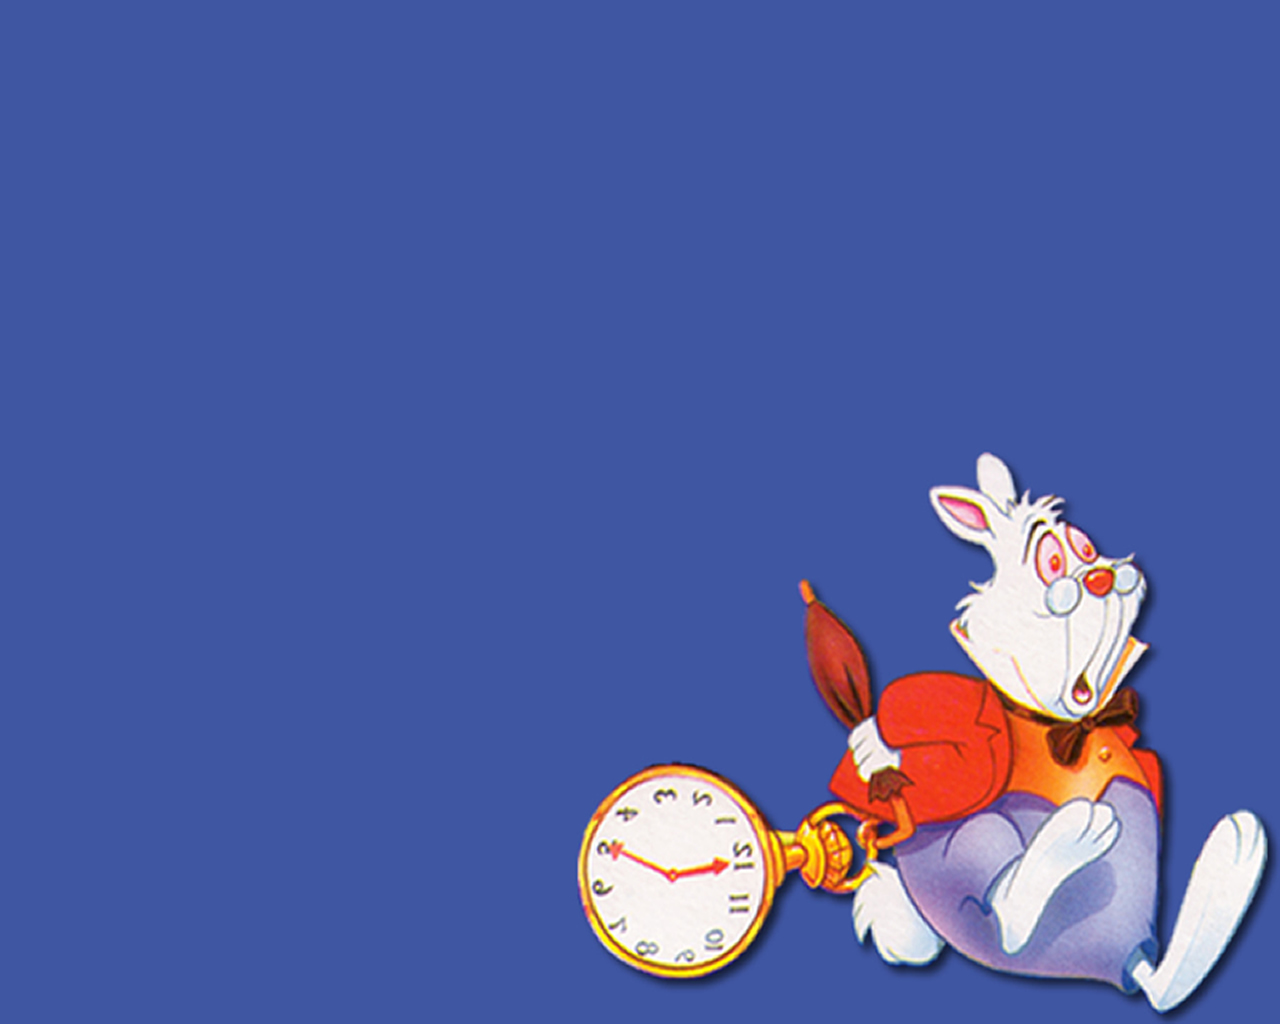 download wallpaper: het konijn uit Alice in Wonderland wallpaper